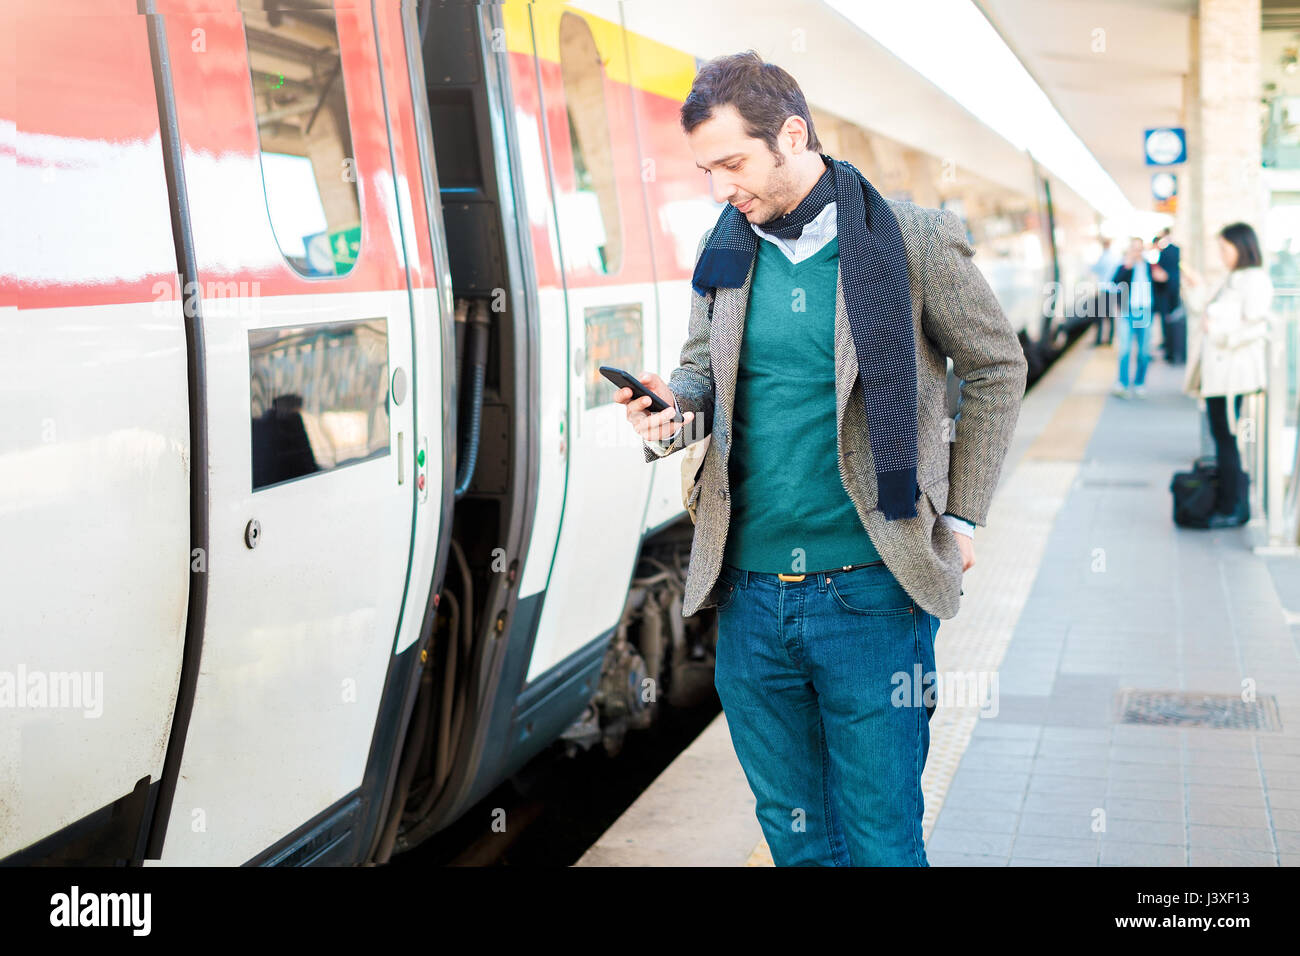 Standing man waiting for the train in a train station platform - Stock Image